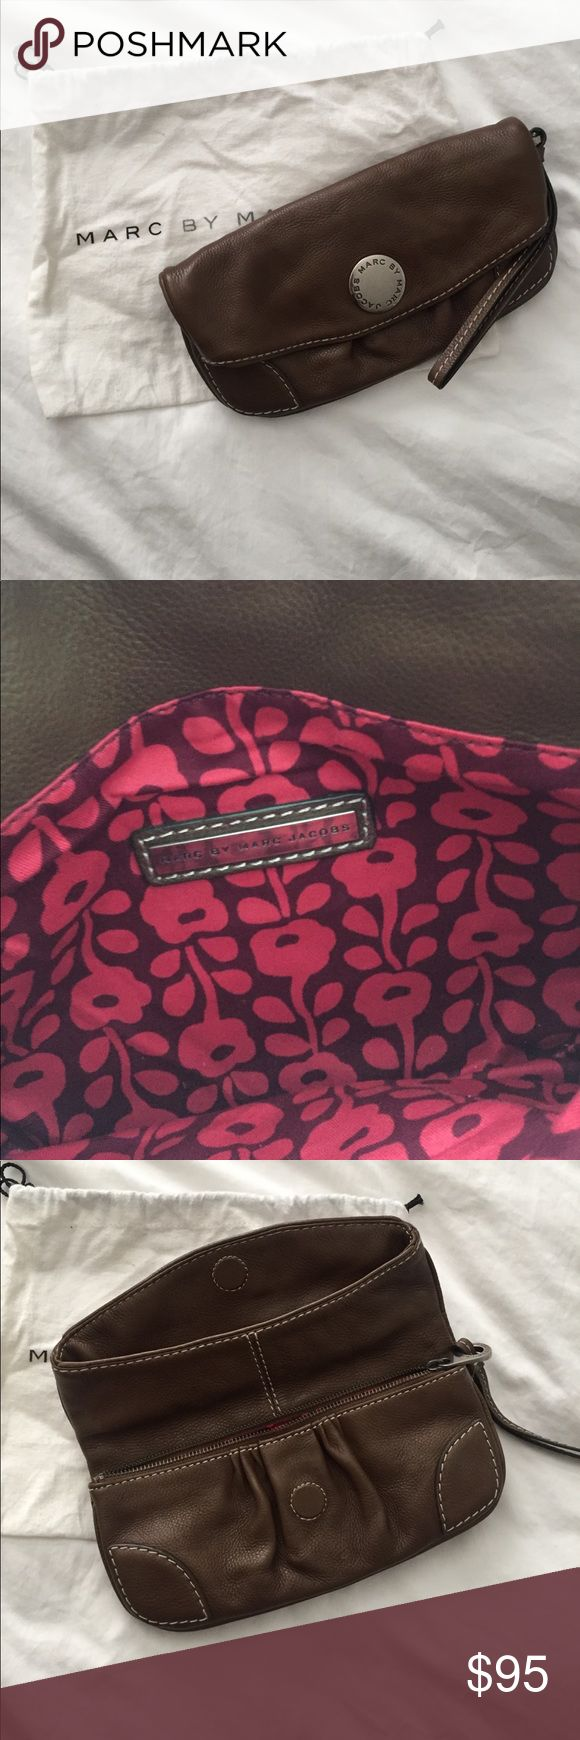 Marc by Marc Jacobs clutch Cute clutch for day or casual night wear Marc Jacobs Bags Clutches & Wristlets